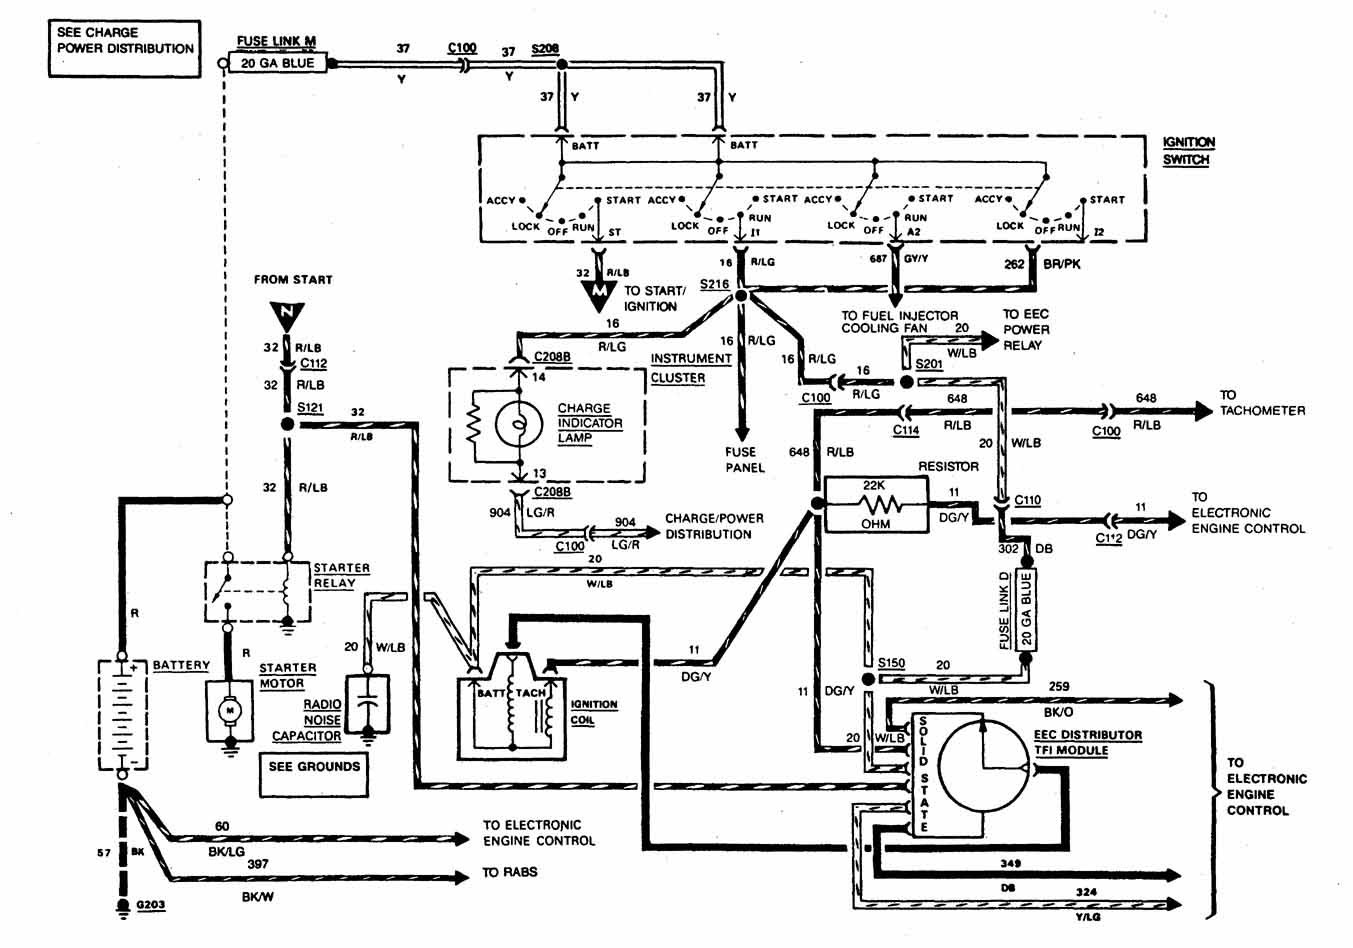 hight resolution of 1987 ford bronco starter wiring diagram example electrical wiring rh huntervalleyhotels co 1990 ford ranger fuse